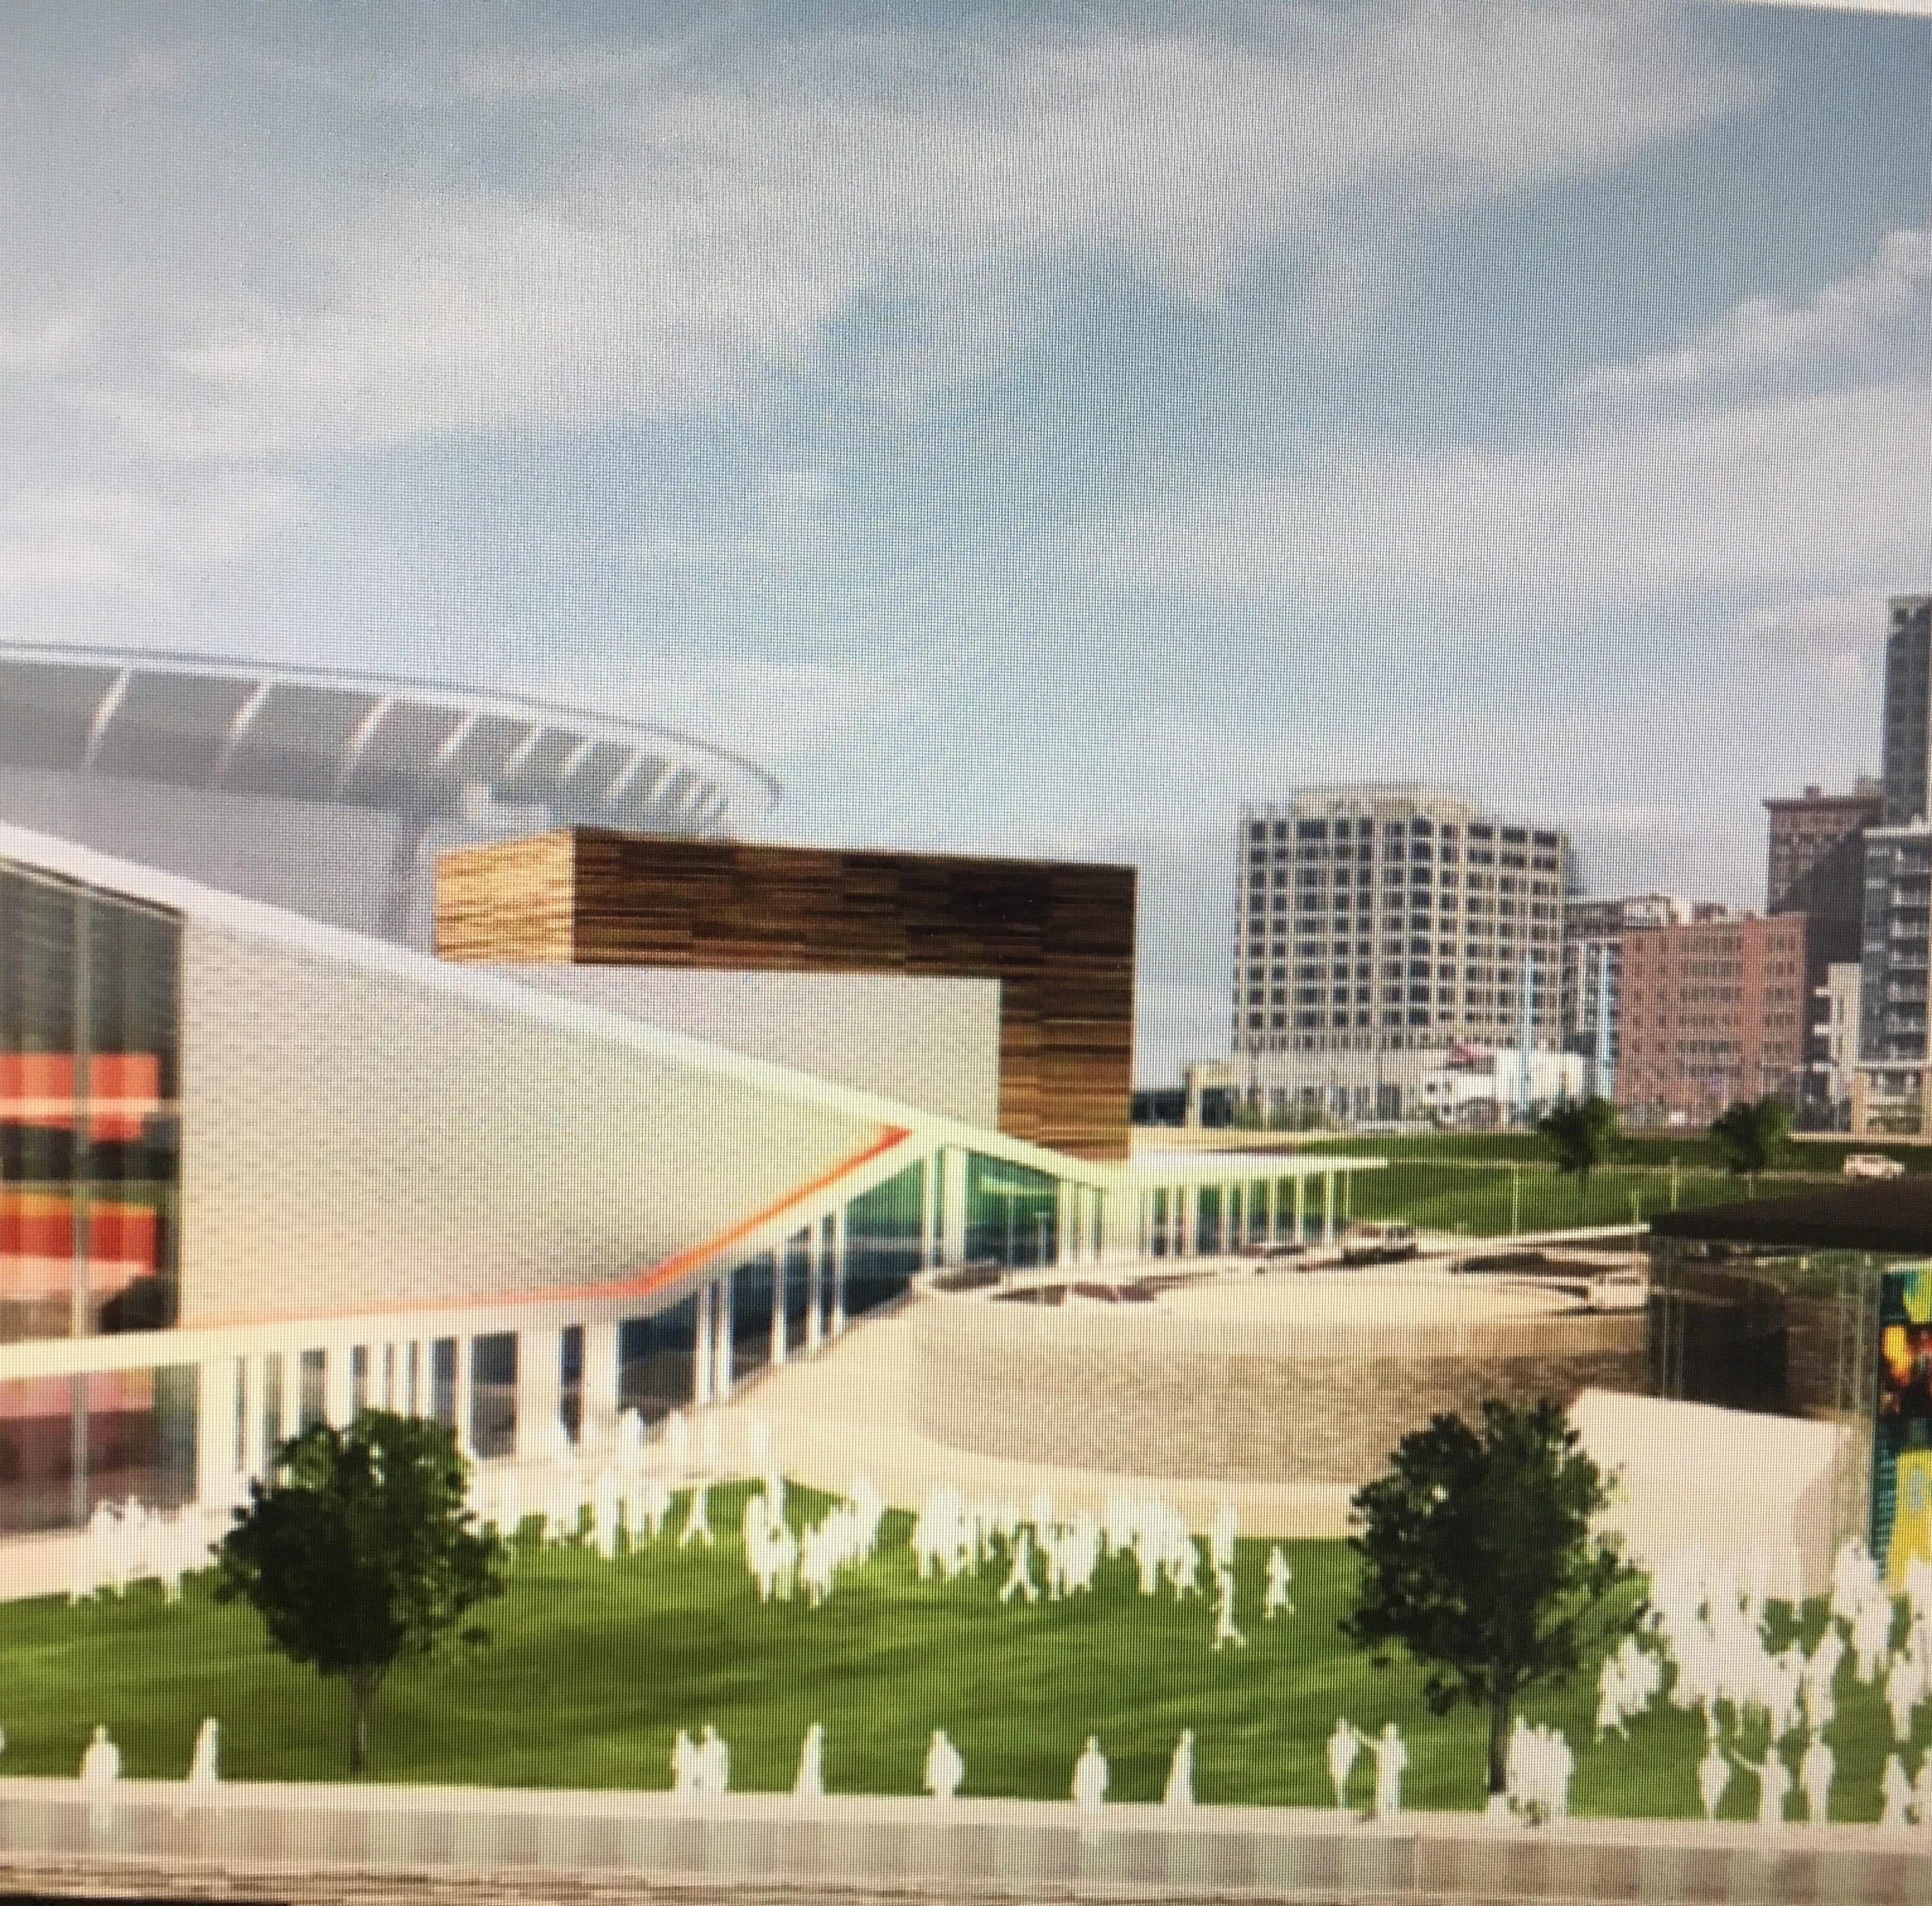 City, county to invest $29.3M for Banks' music venue